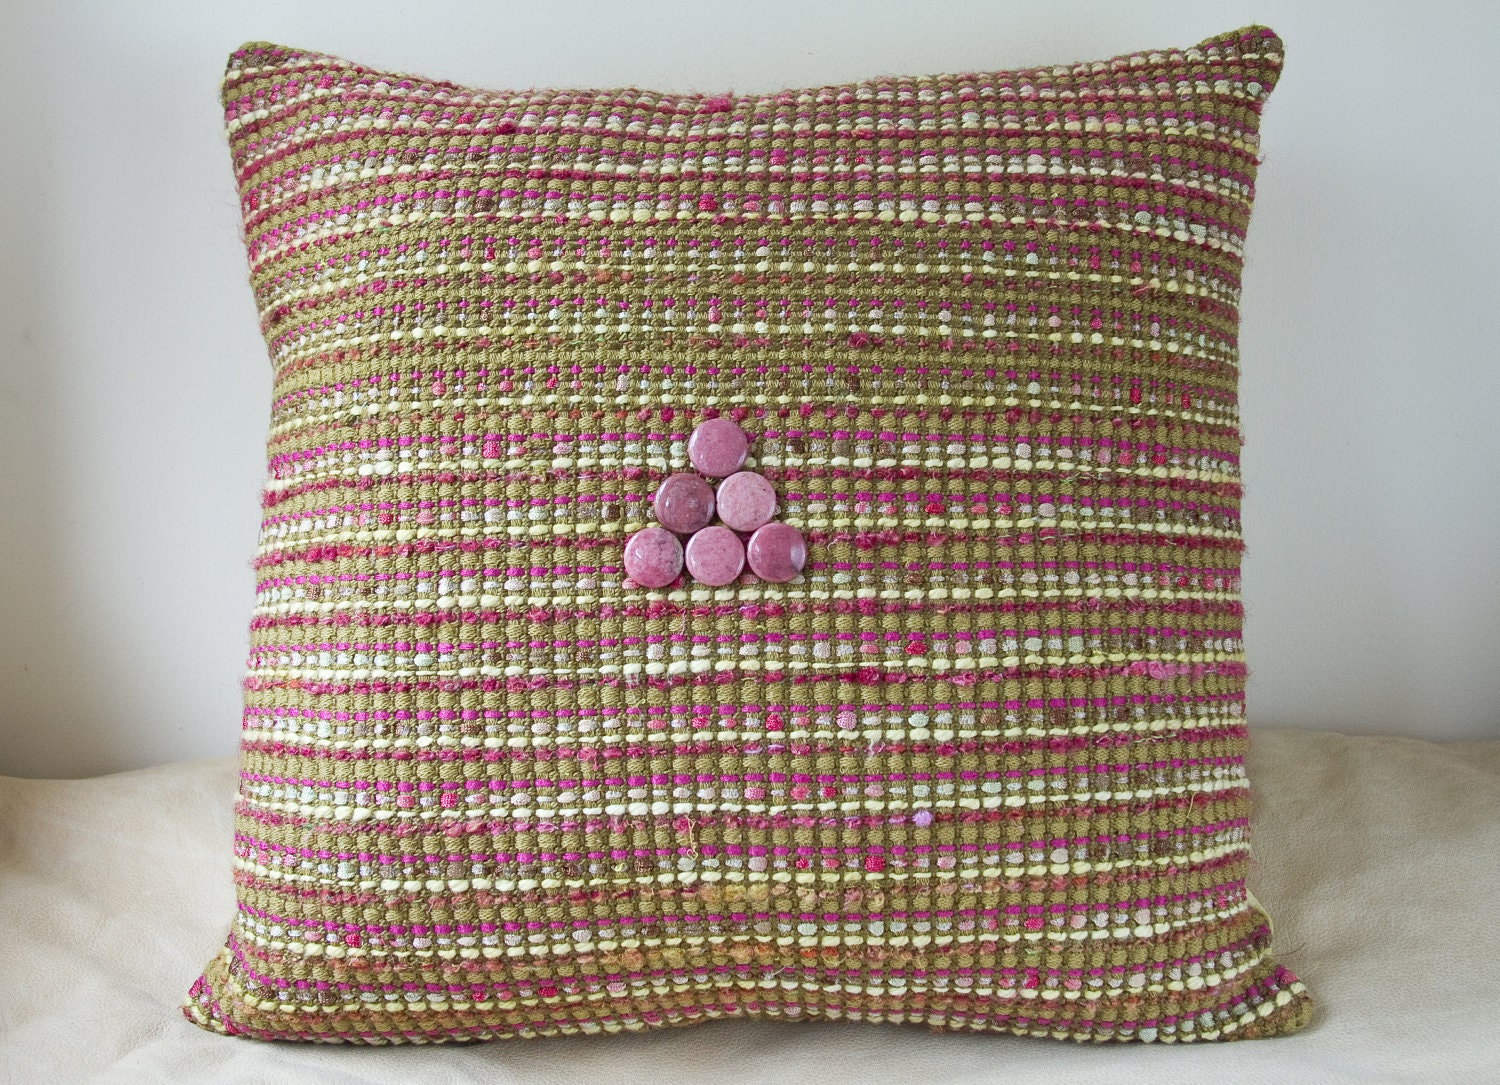 SPRING FLING Decorative pillow green pink beads throw spring